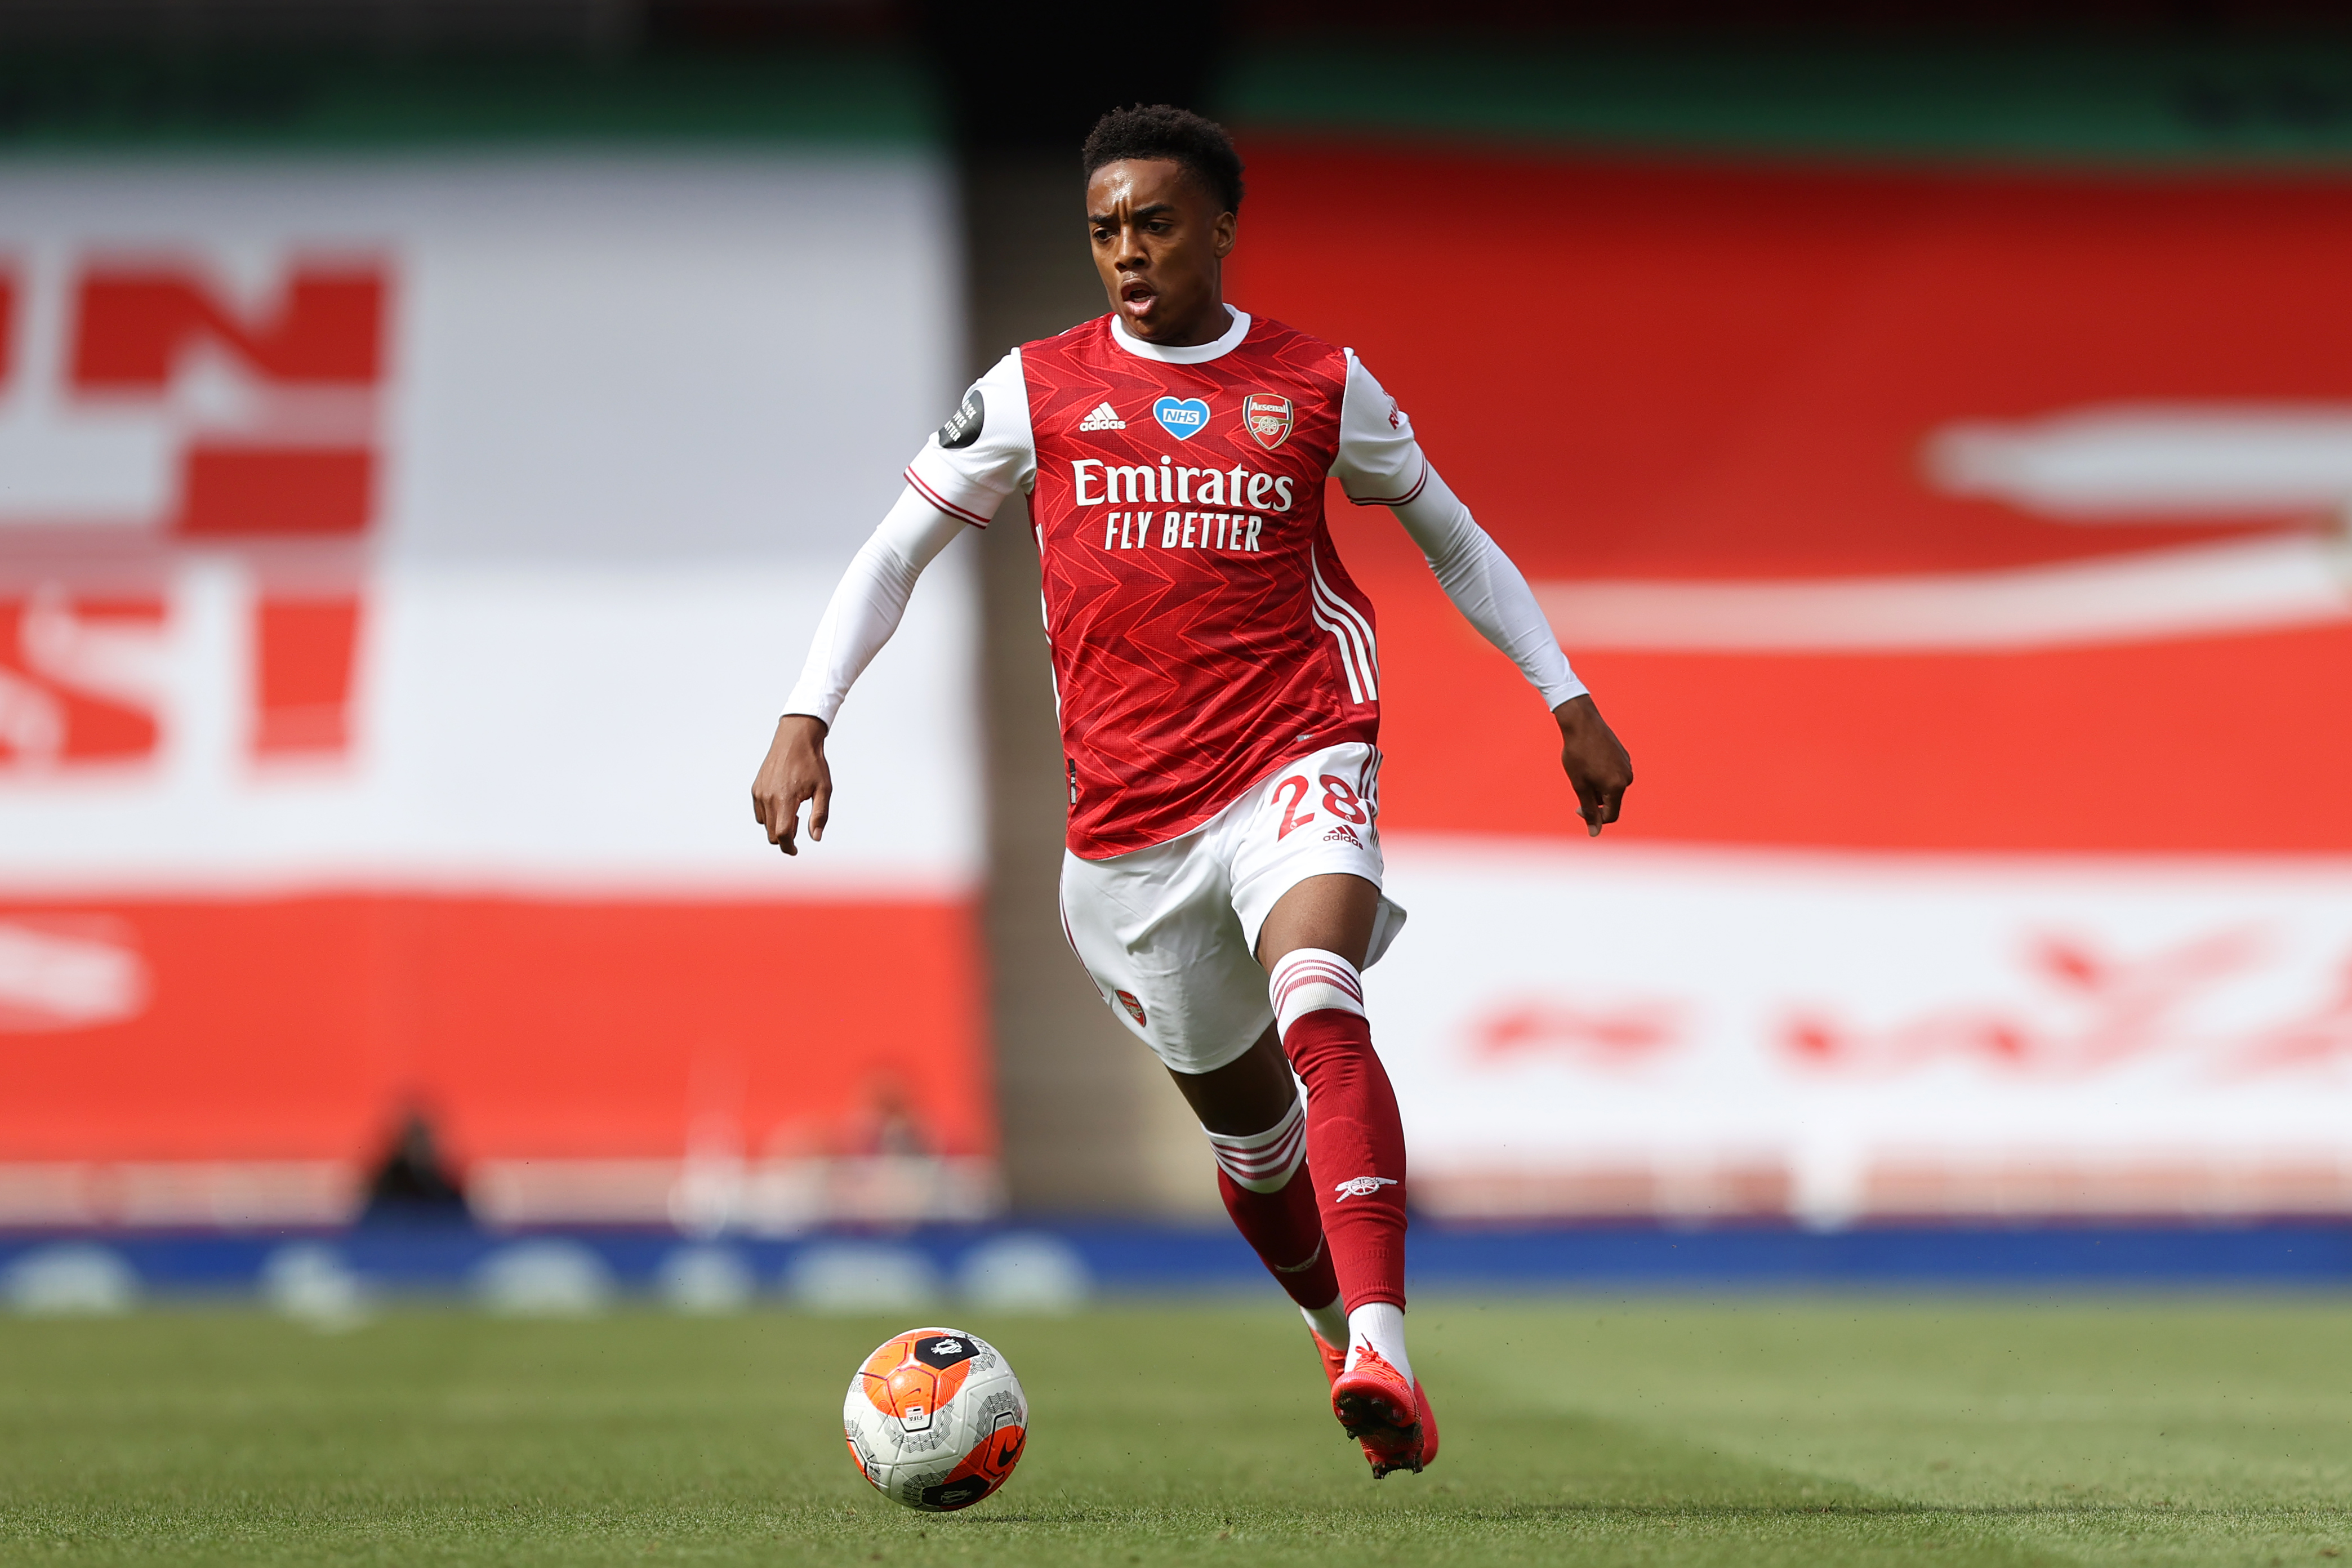 Arsenal youngster Willock joins Newcastle on loan